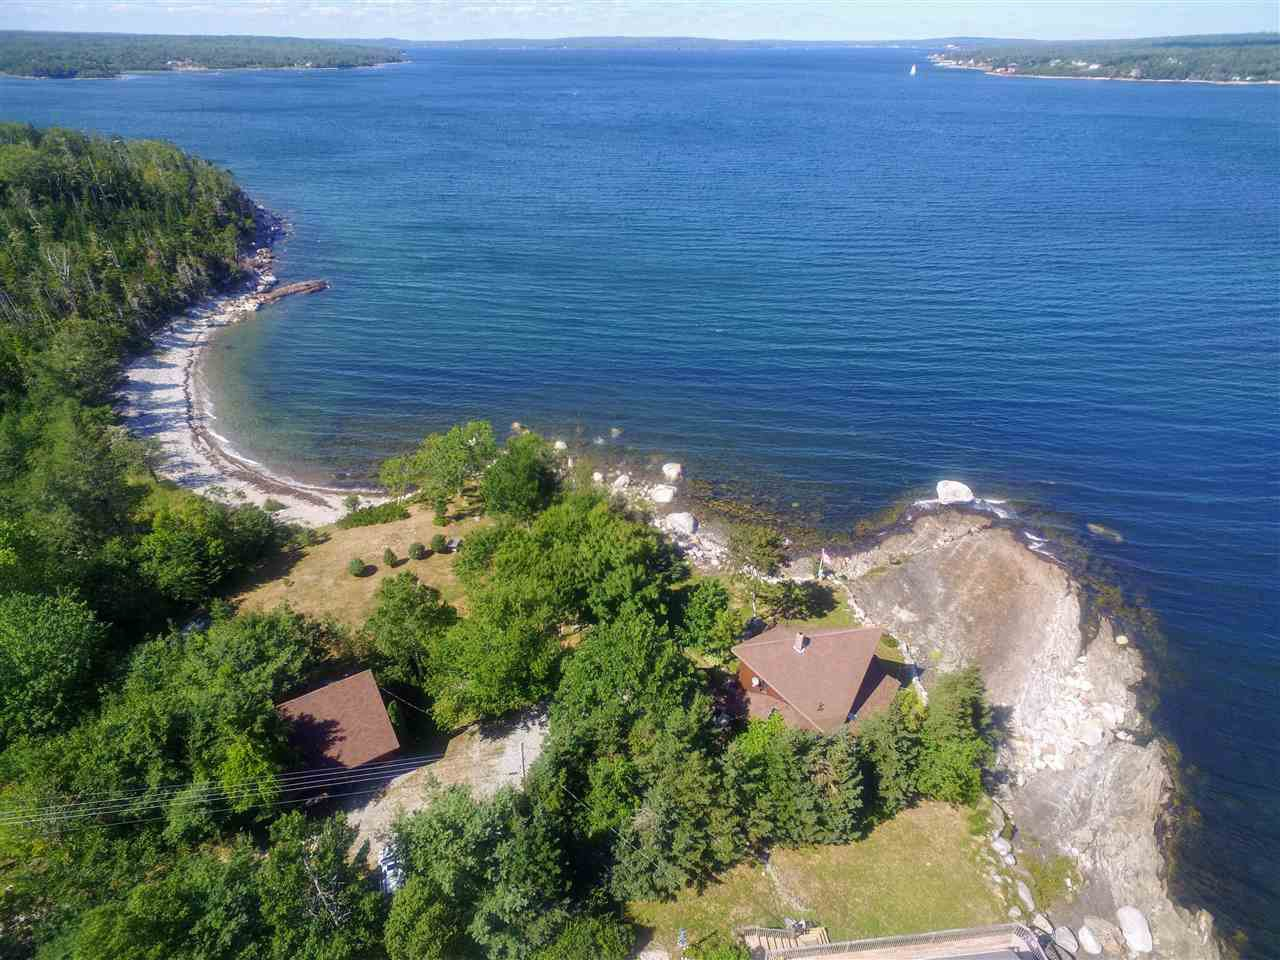 Main Photo: 140 Fort Road in Gunning Cove: 407-Shelburne County Residential for sale (South Shore)  : MLS®# 202015036